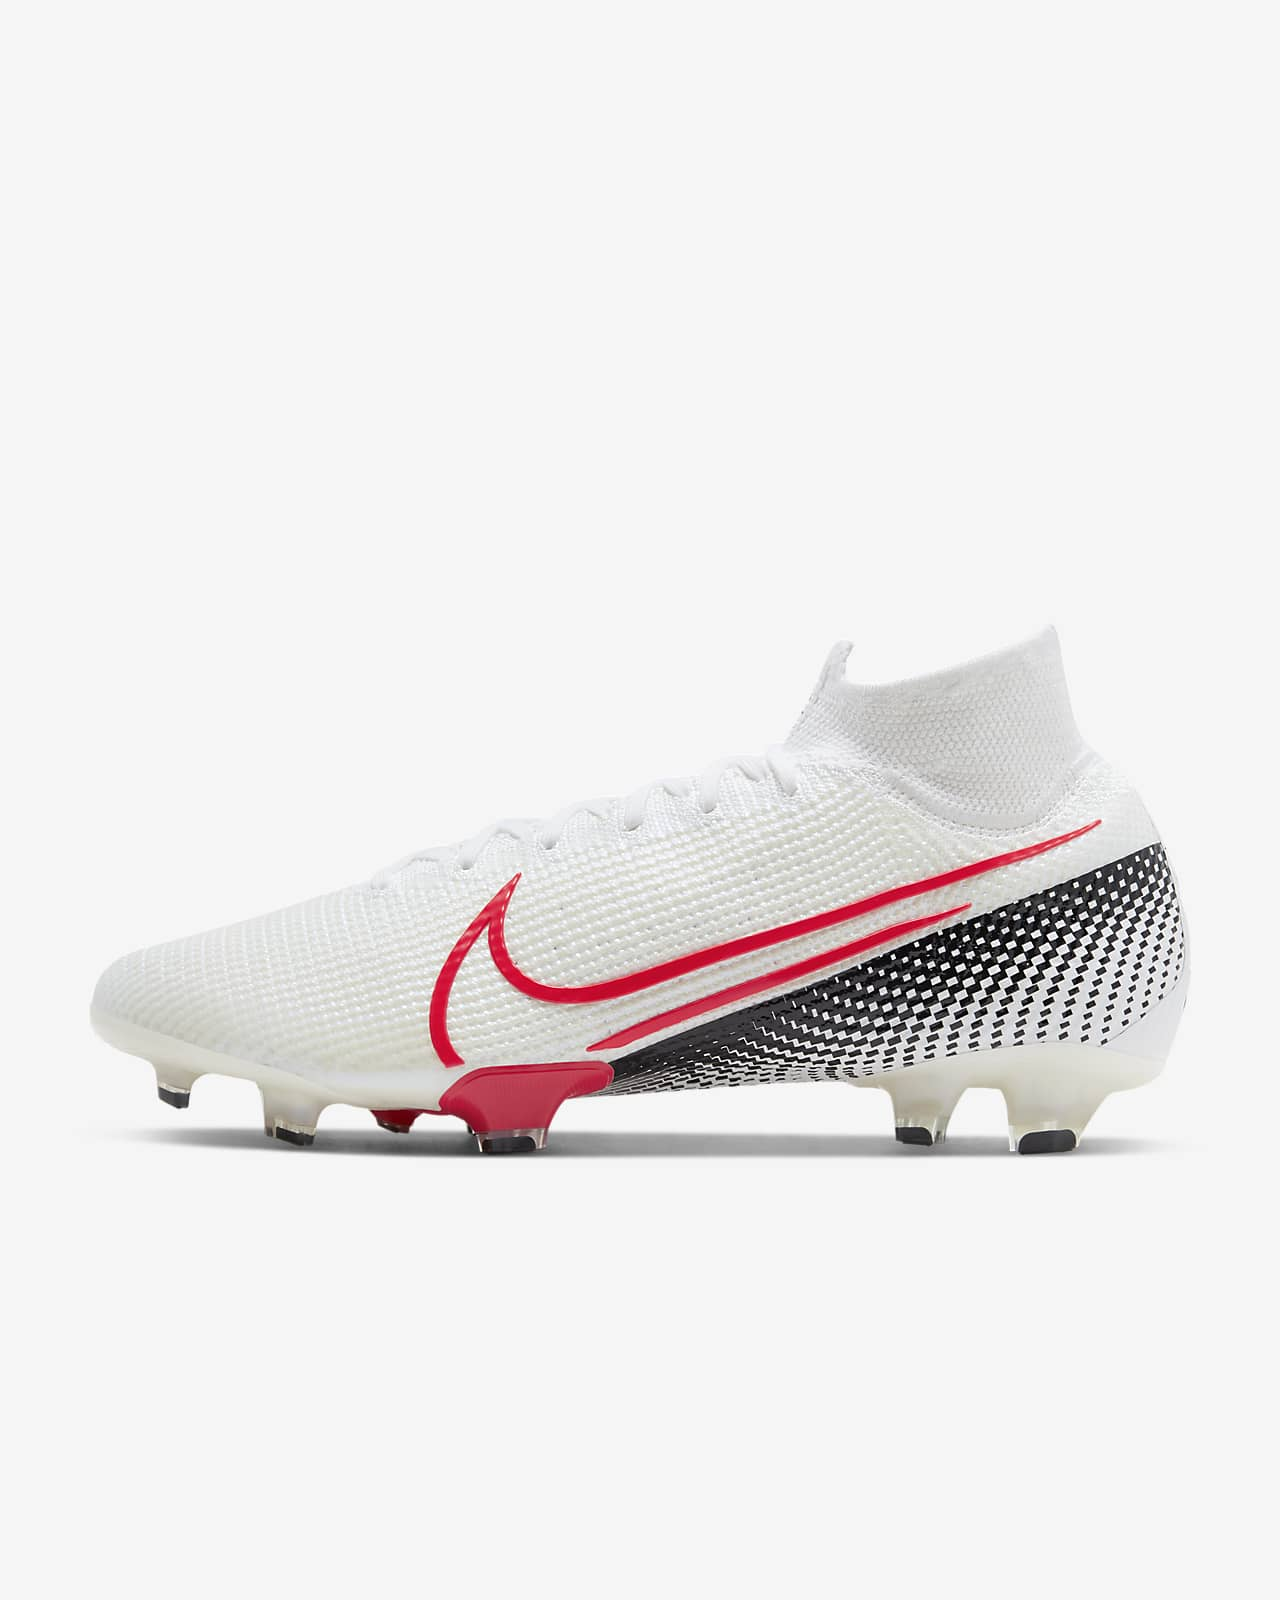 bañera Desagradable fácil de lastimarse  Nike Mercurial Superfly 7 Elite FG Firm-Ground Football Boot. Nike CH